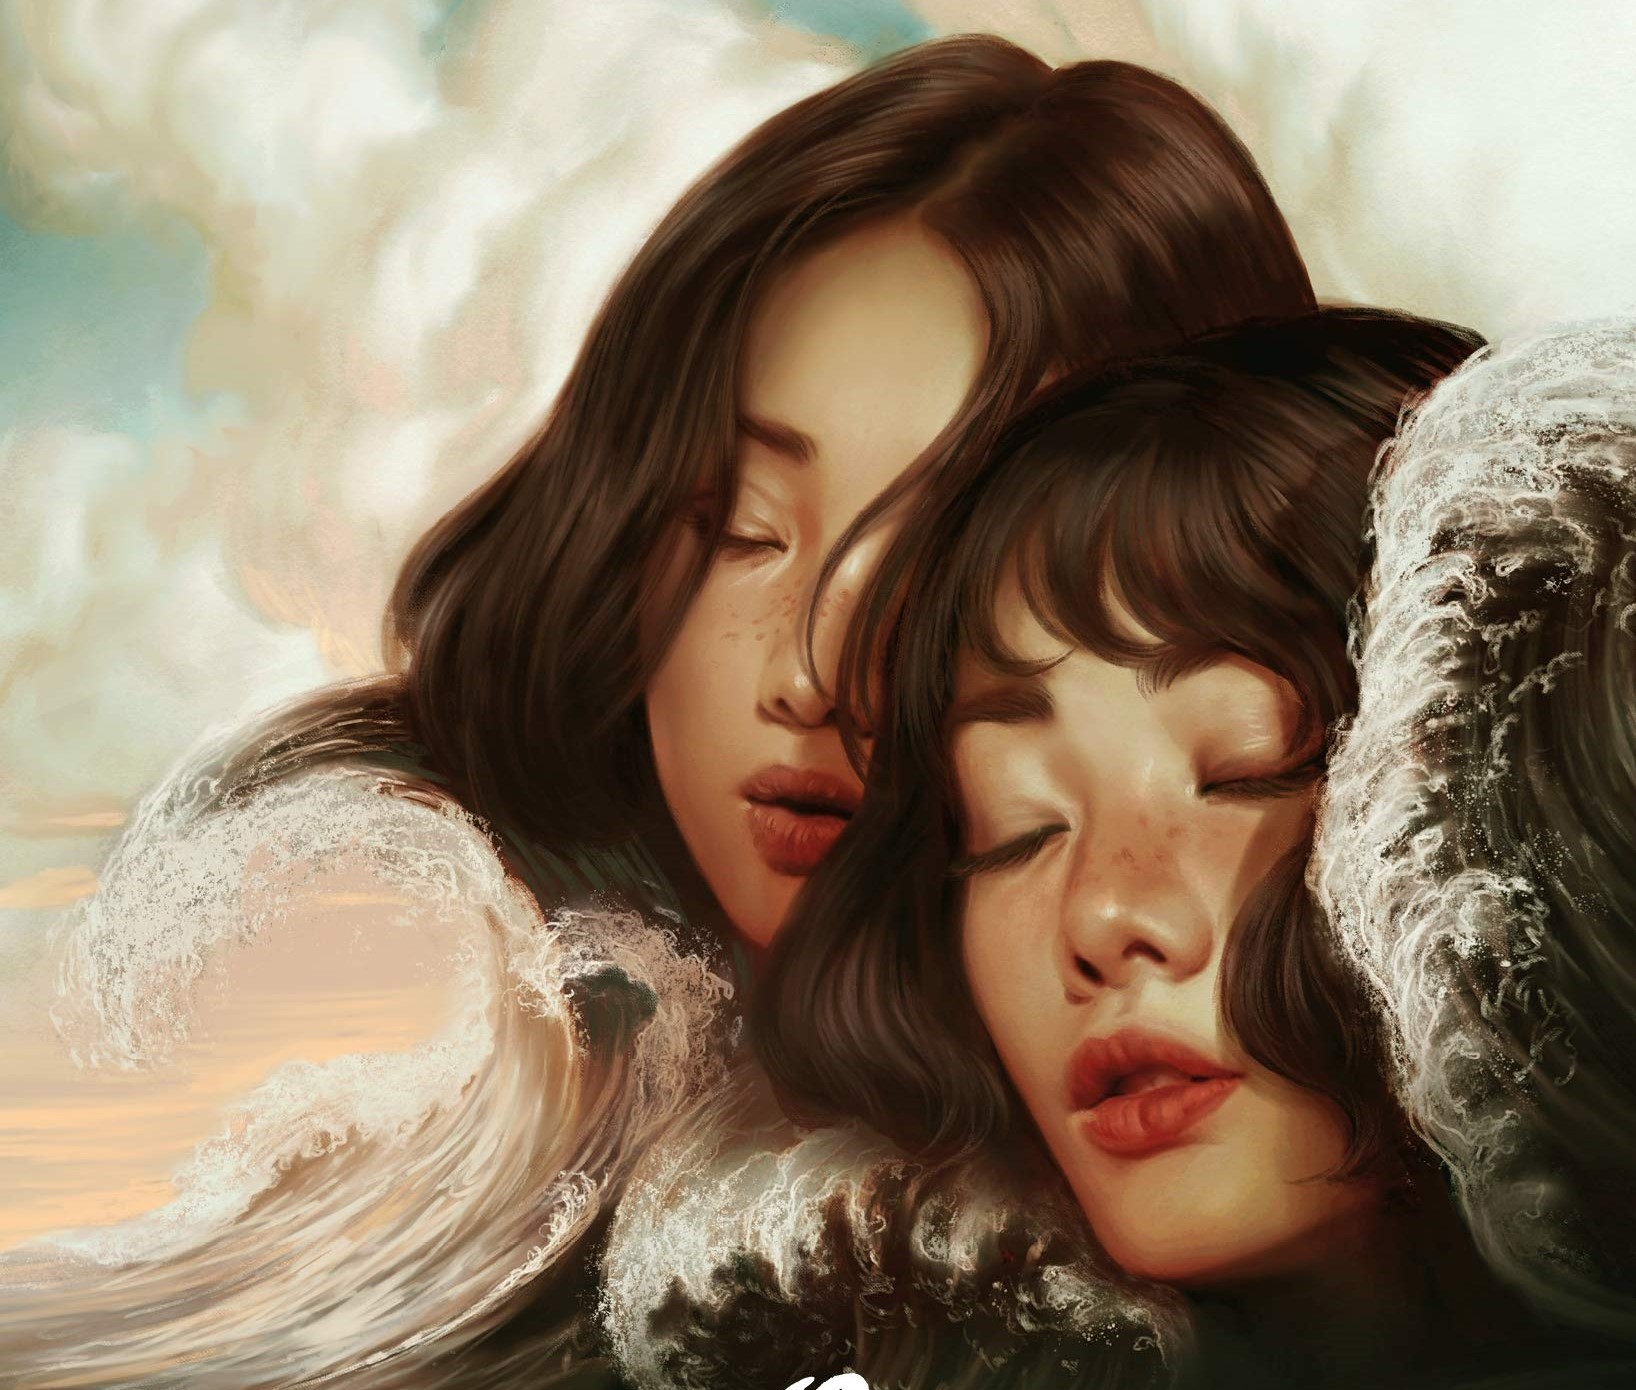 Snippet of the book cover for The Ones We're Meant To Find by Joan He